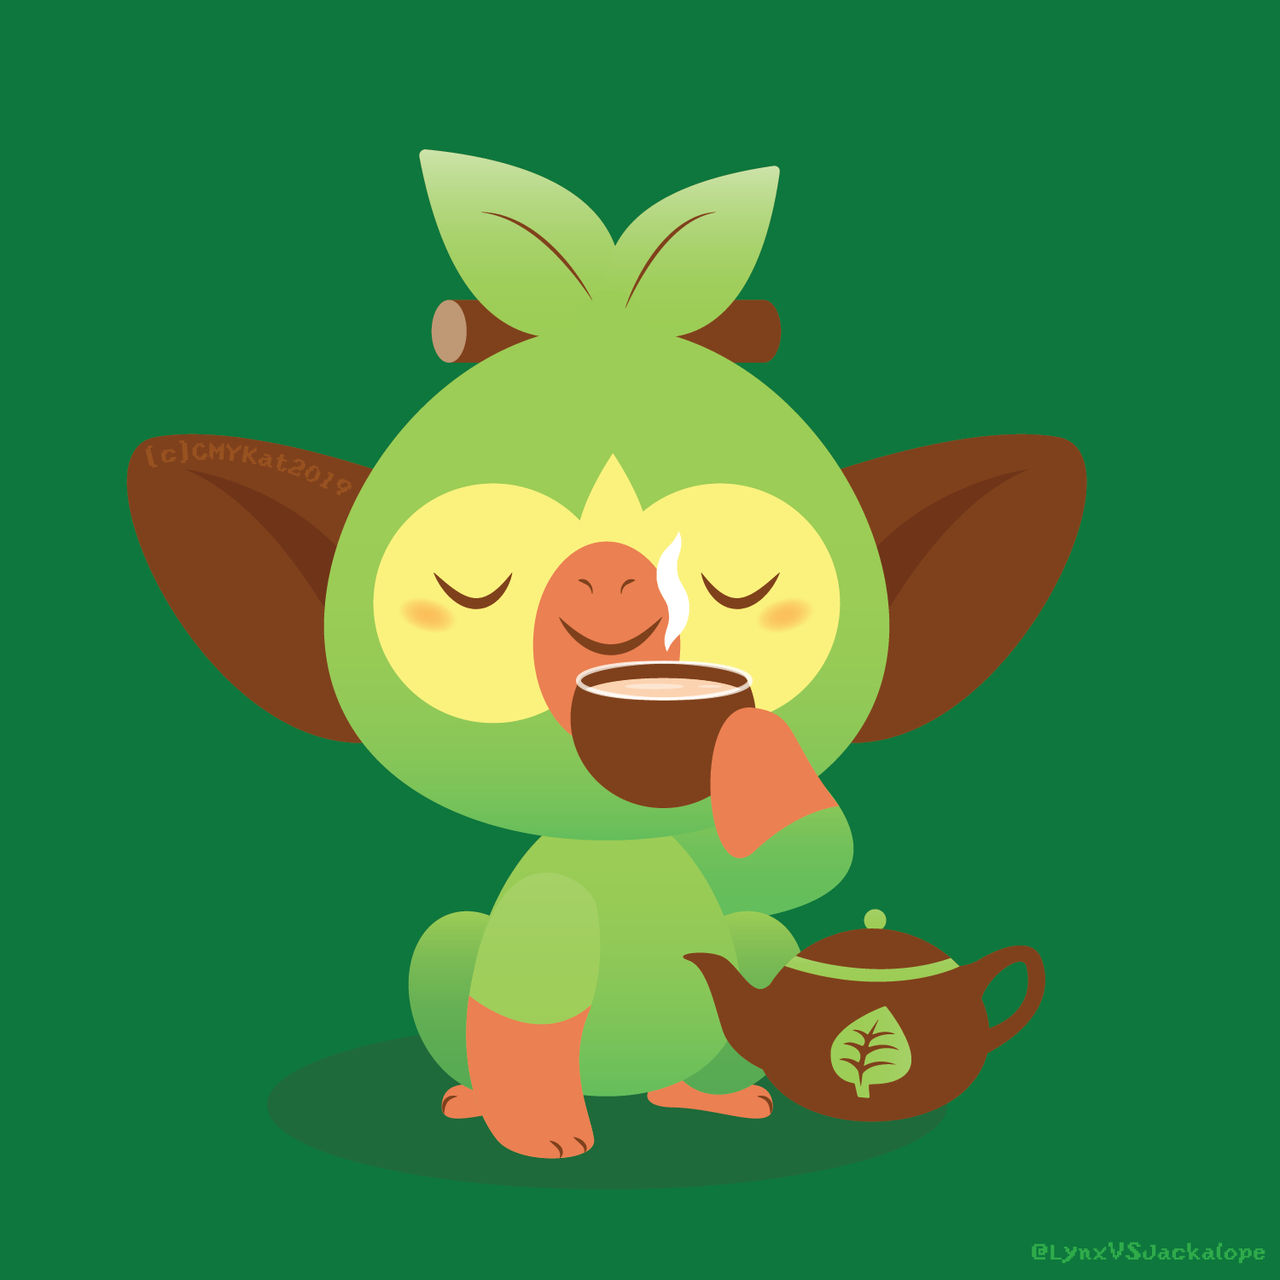 Grookey Gang – See more ideas about pokemon art, pokemon, cute pokemon.